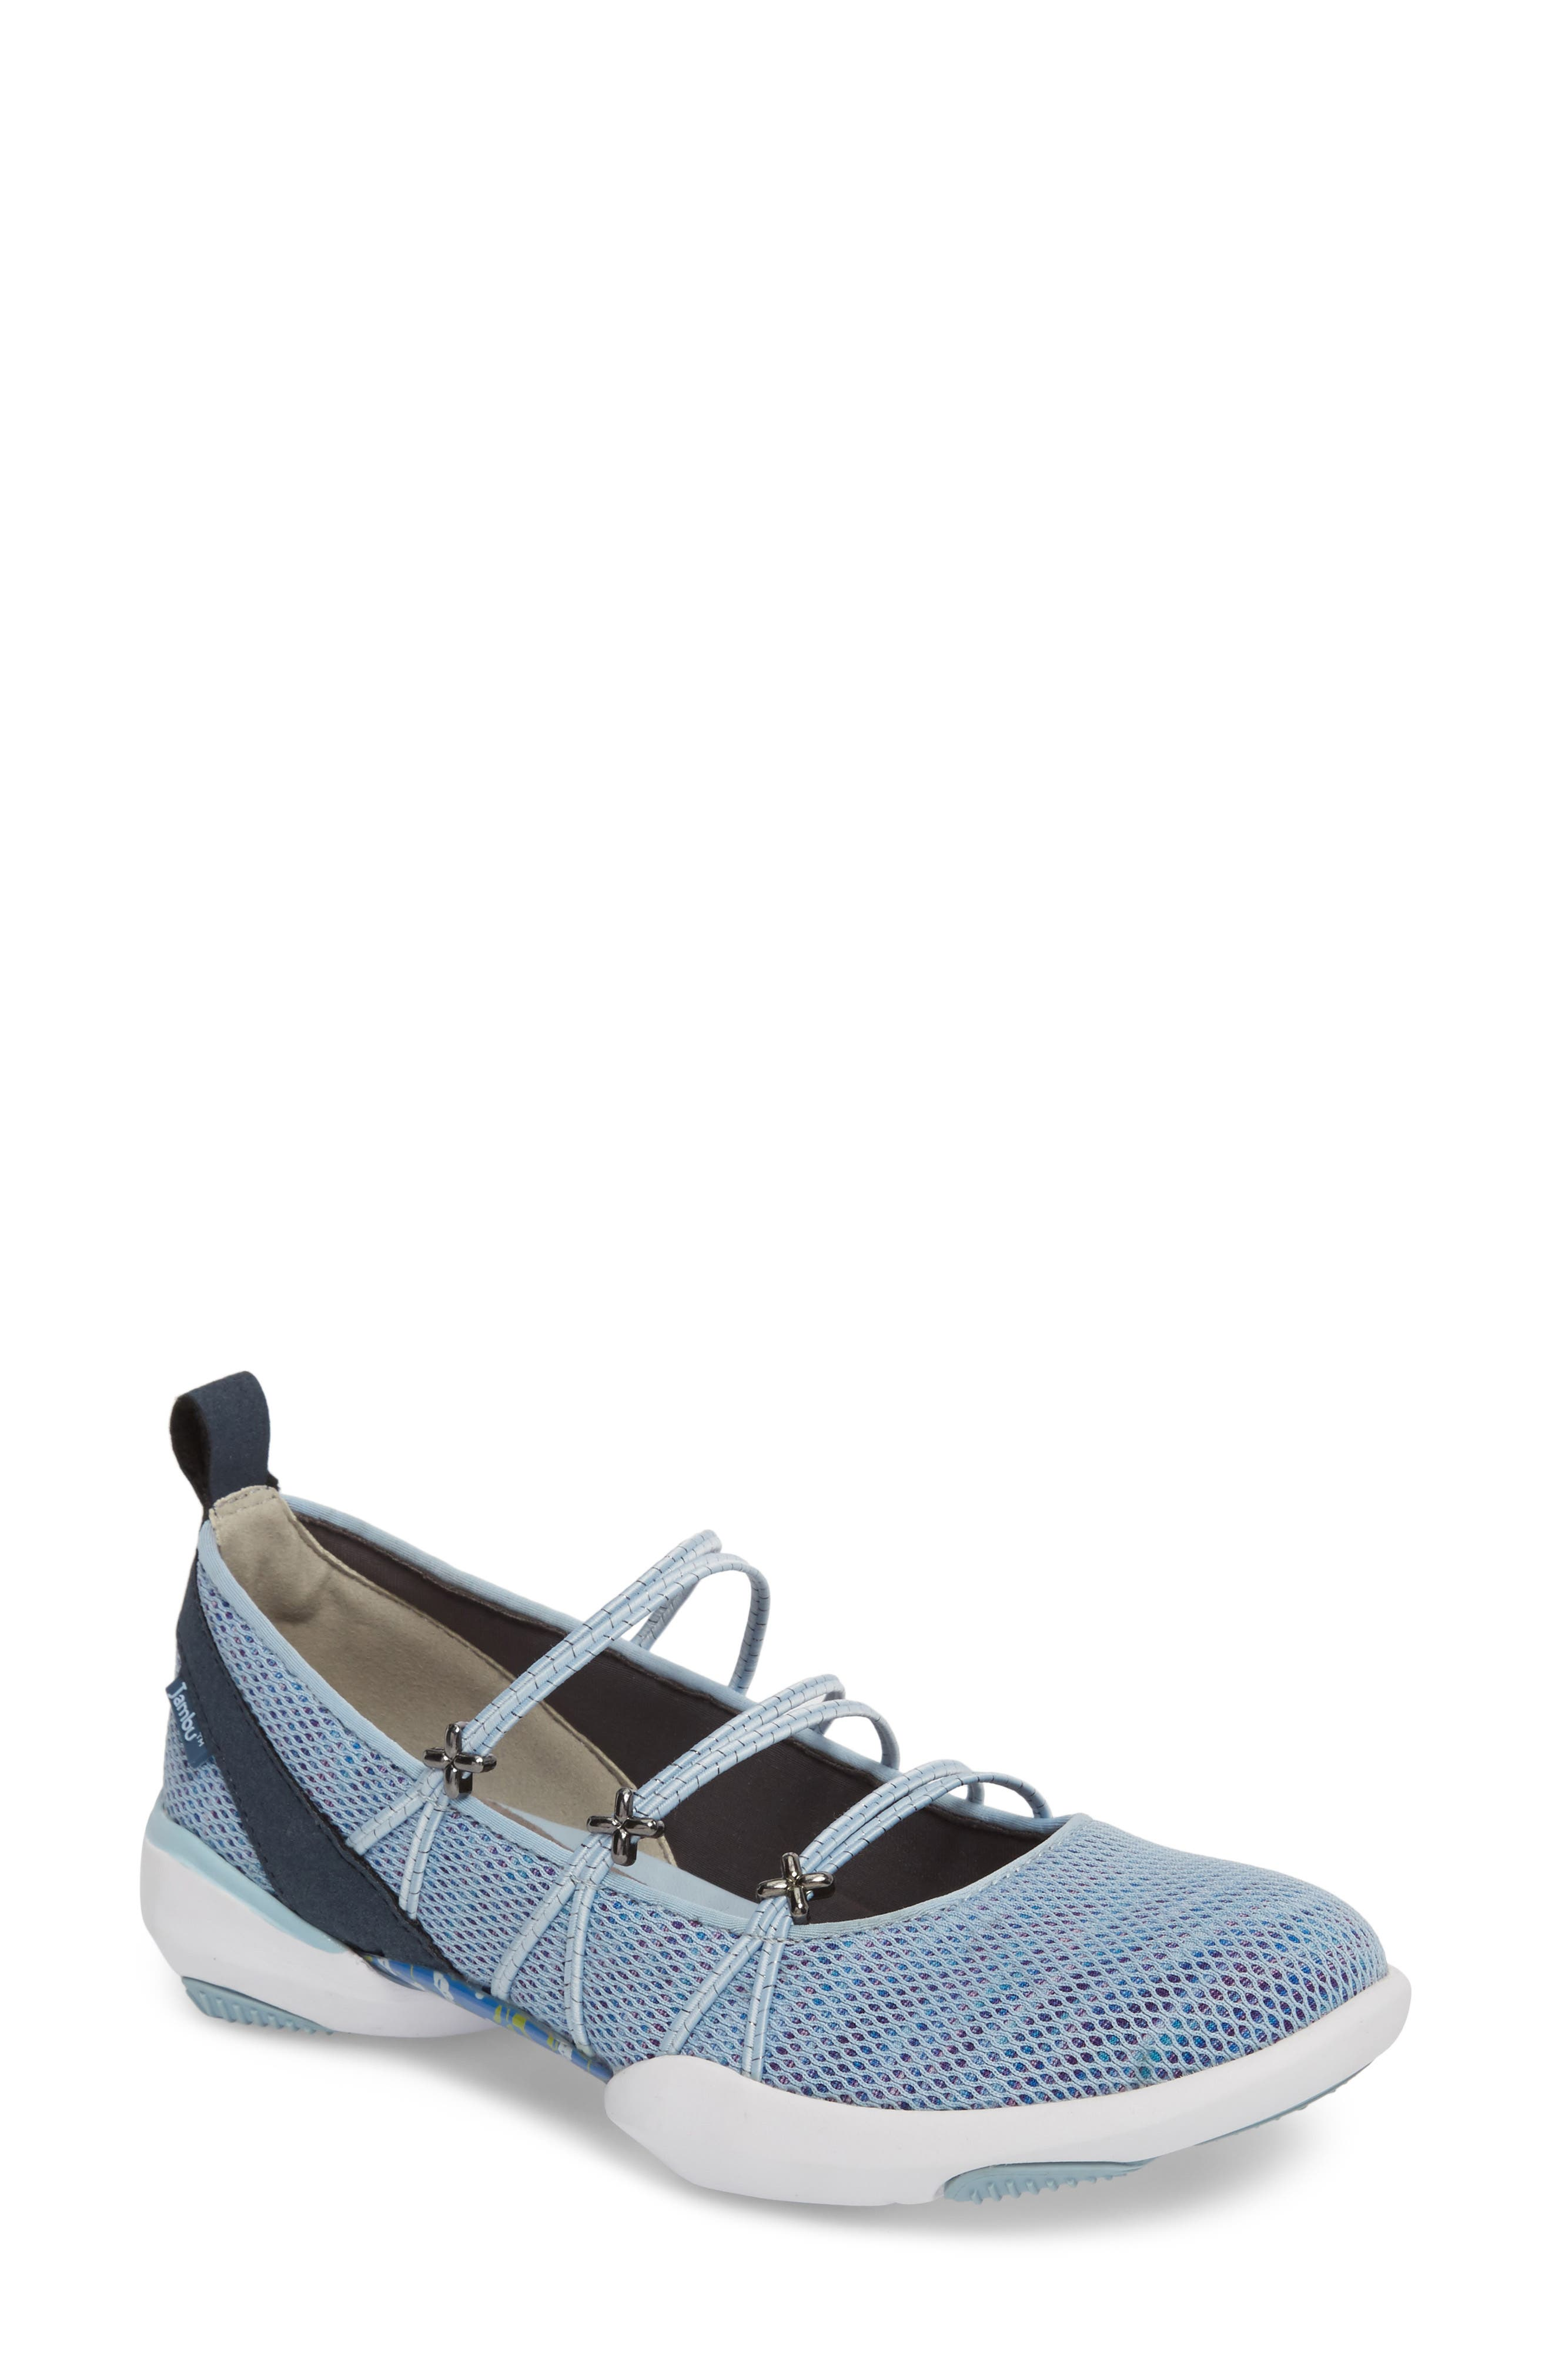 Cheyenne Water Ready Slip-on,                             Main thumbnail 1, color,                             Powder Blue